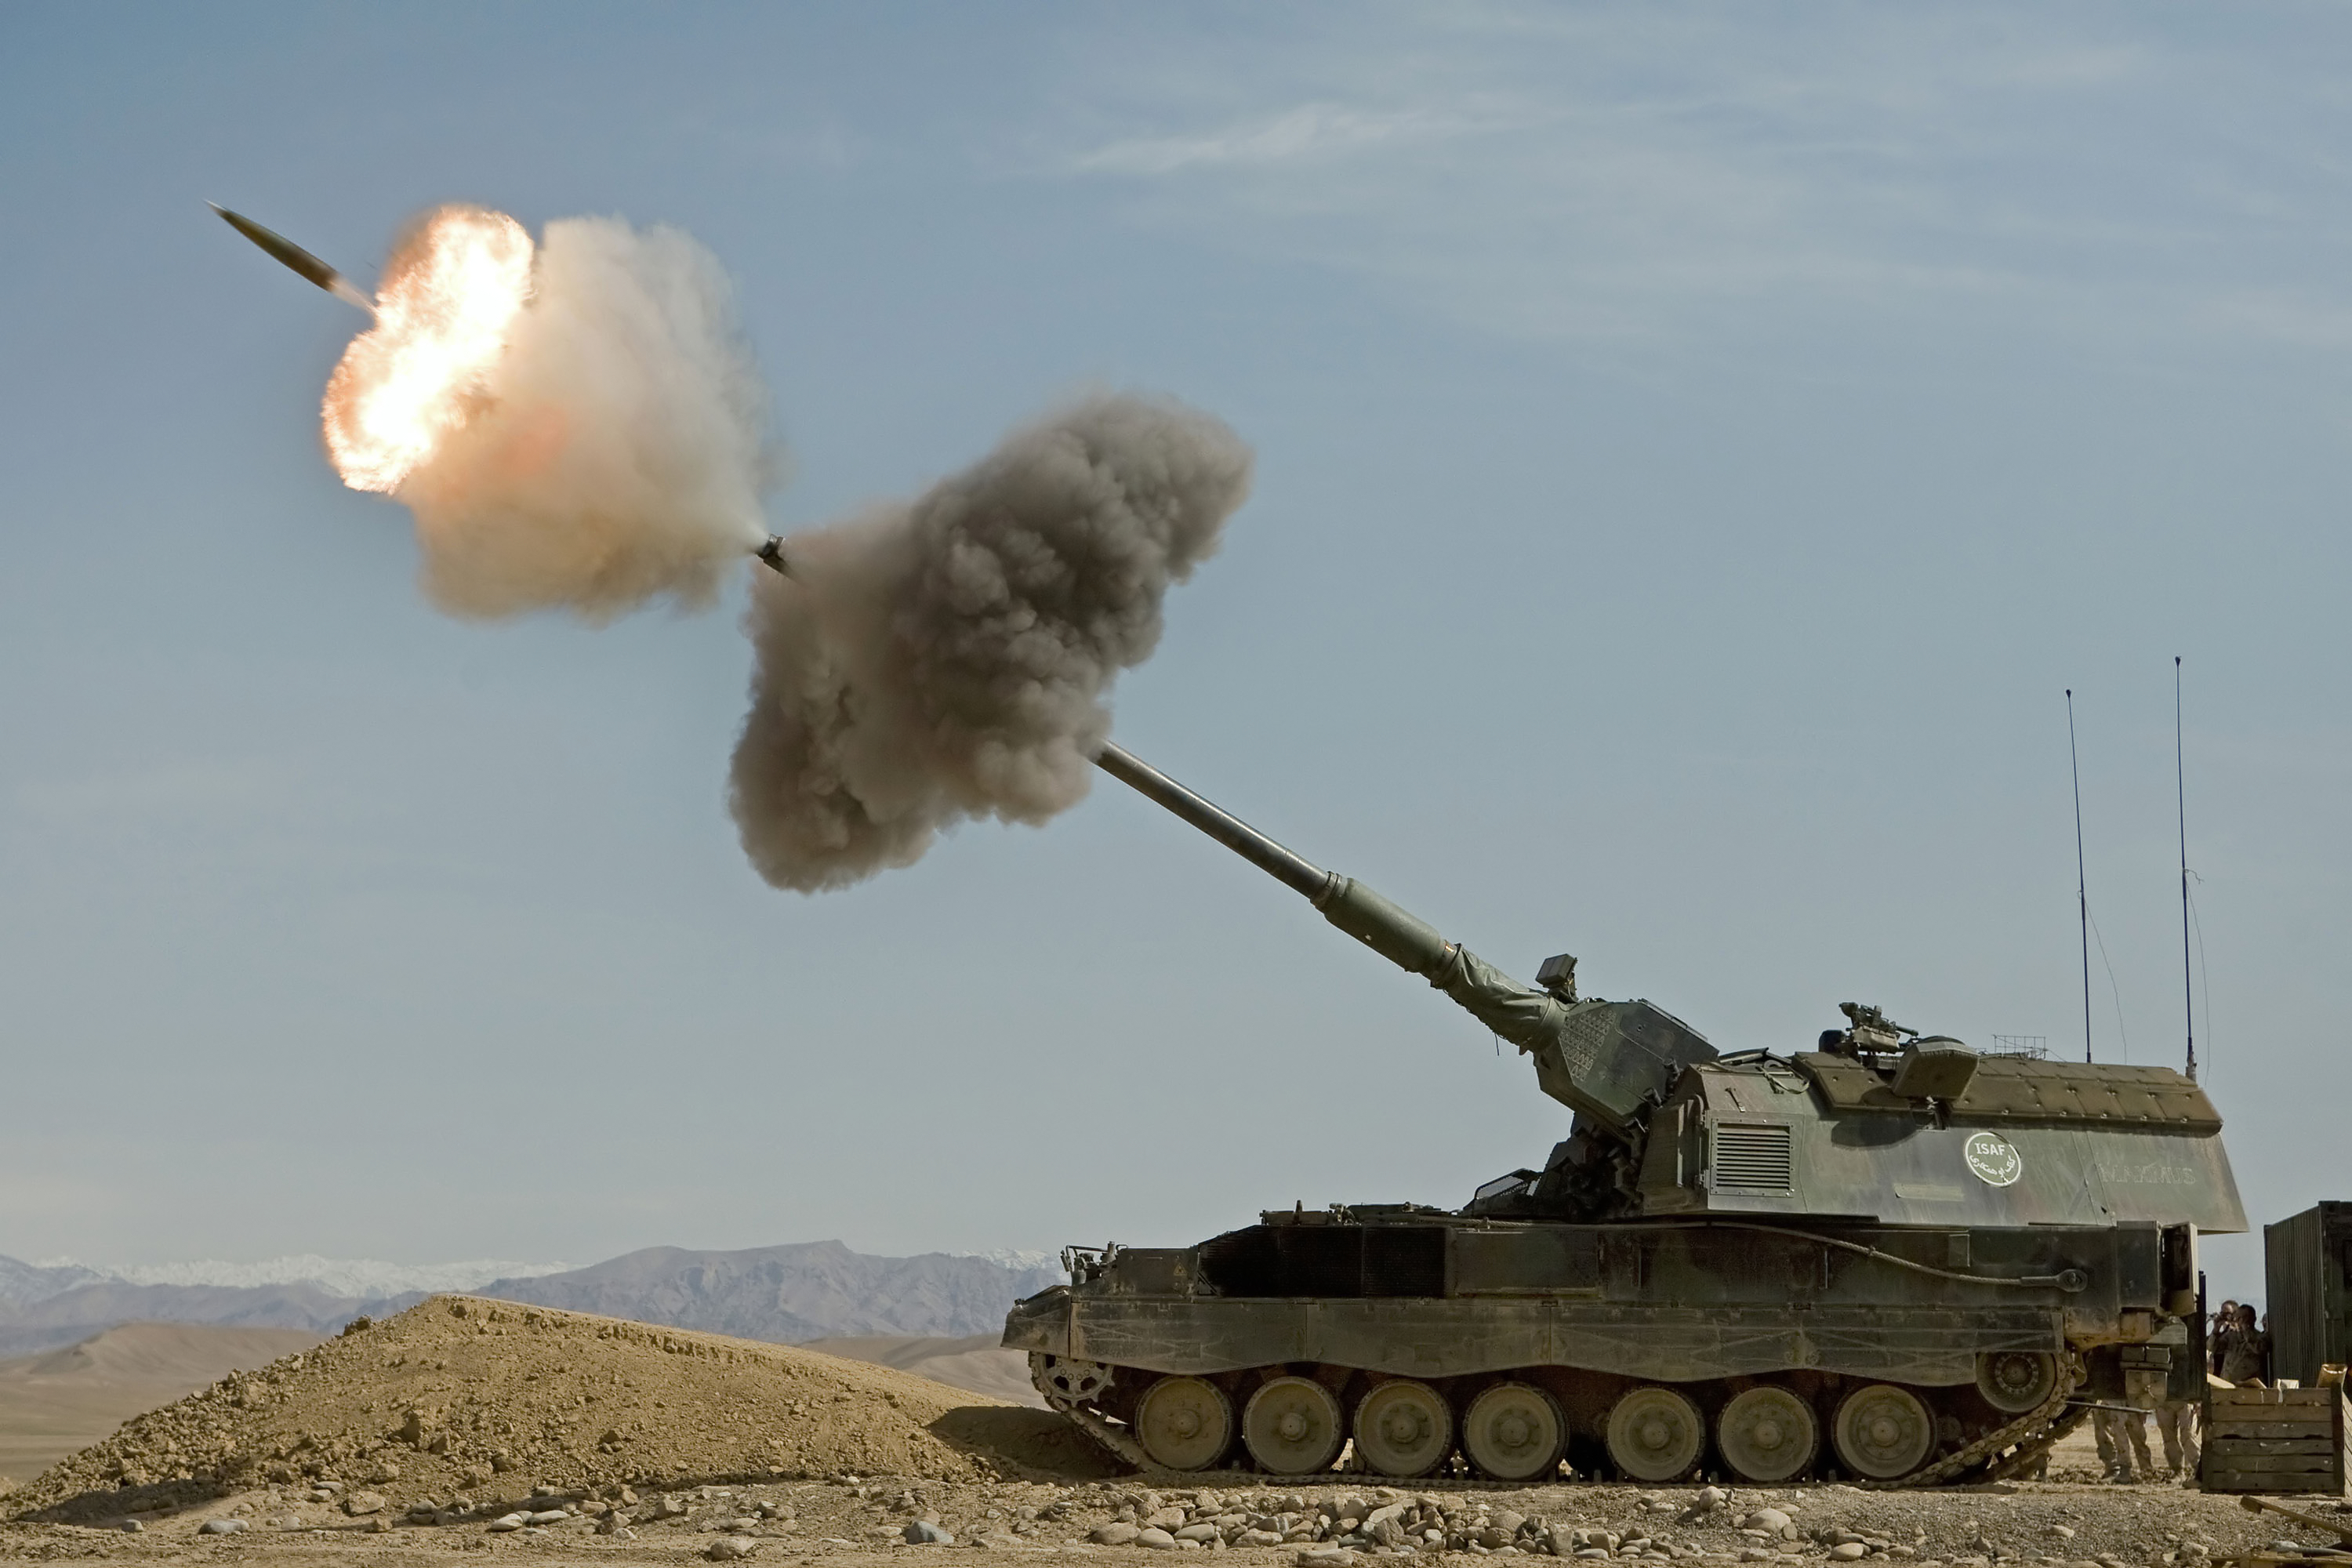 https://upload.wikimedia.org/wikipedia/commons/c/cb/Dutch_Panzerhaubitz_fires_in_Afghanistan.jpg